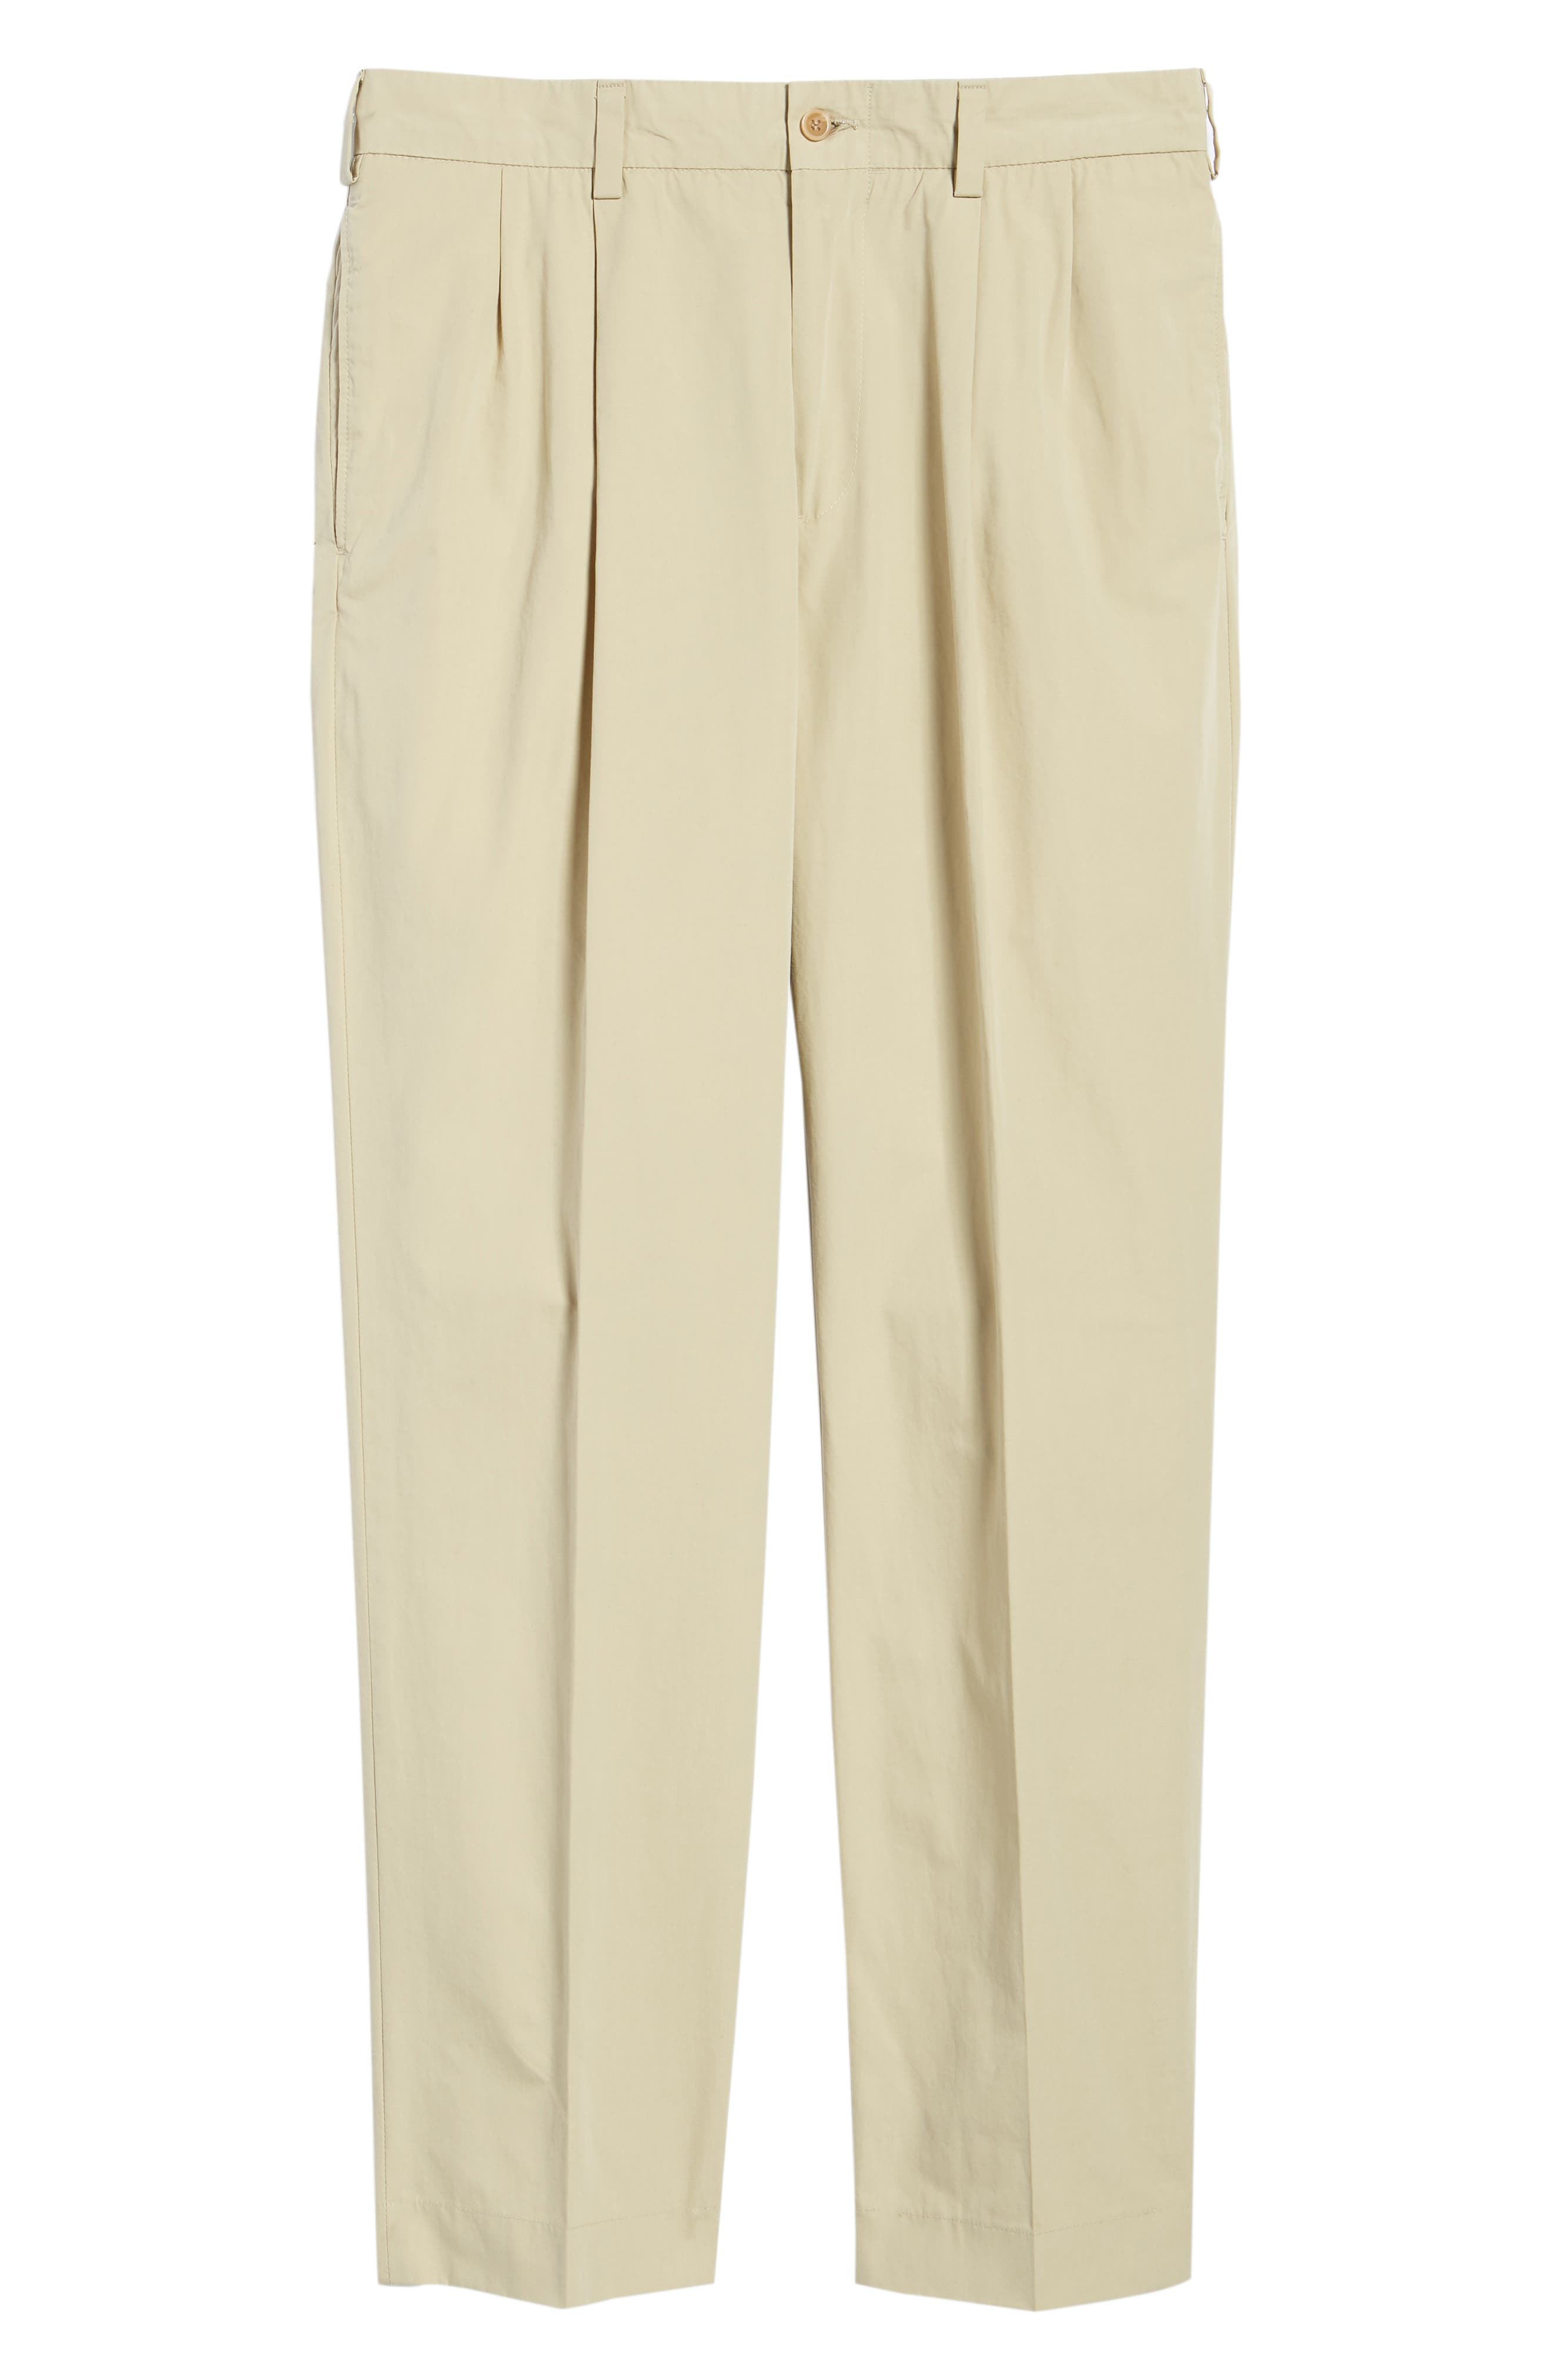 Classic Fit Pleated Tropical Poplin Pants,                             Alternate thumbnail 6, color,                             KHAKI